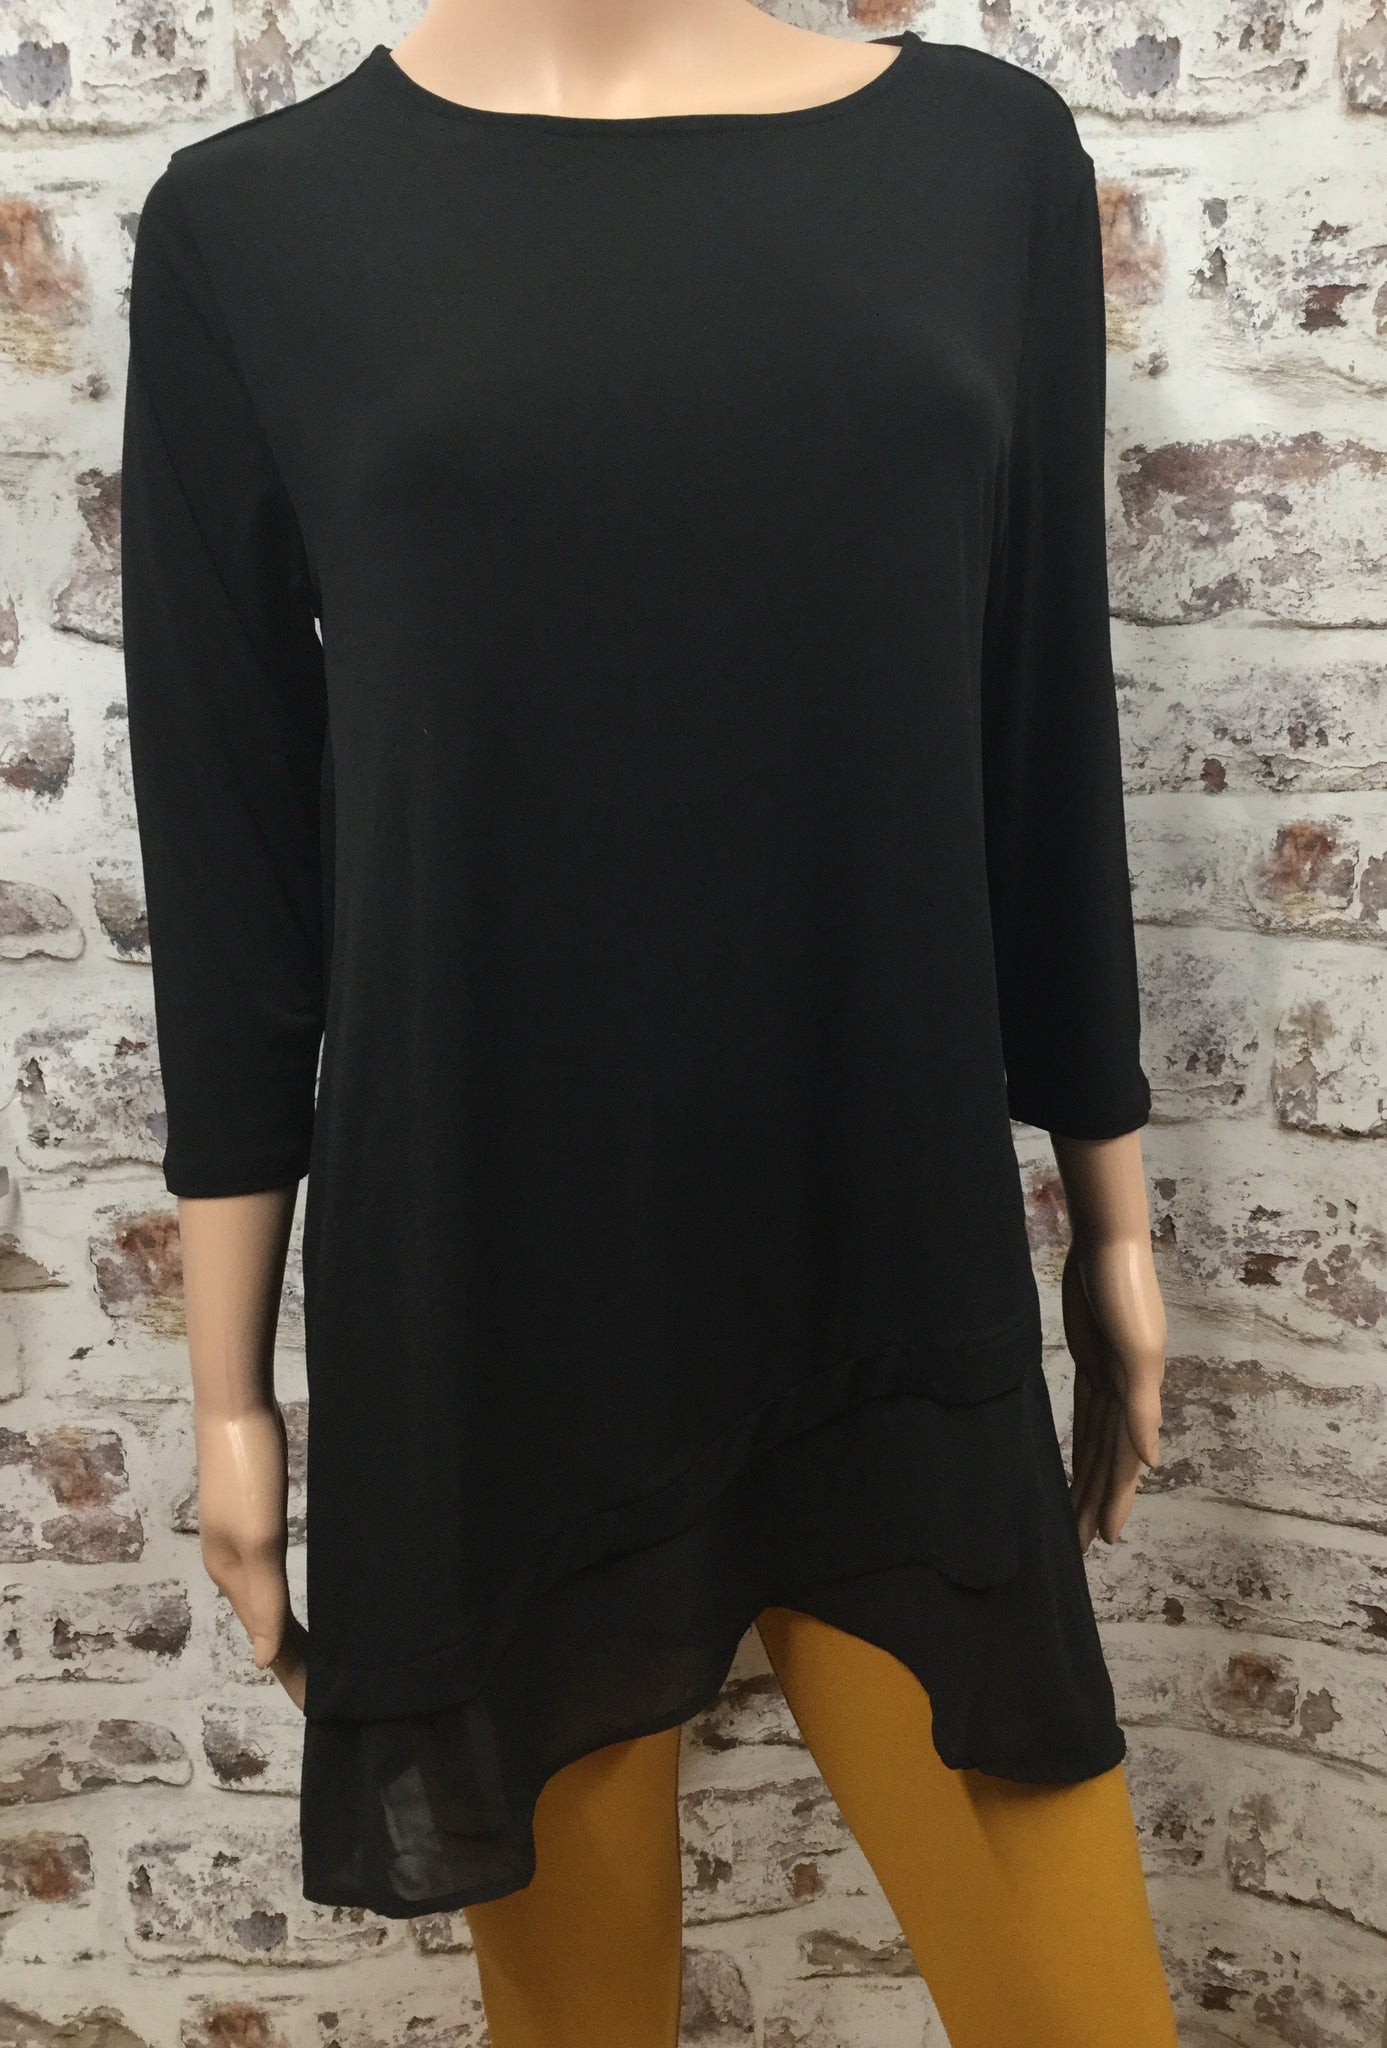 Plus Size Black Round Neck 3/4 Sleeve with Chiffon Overlap